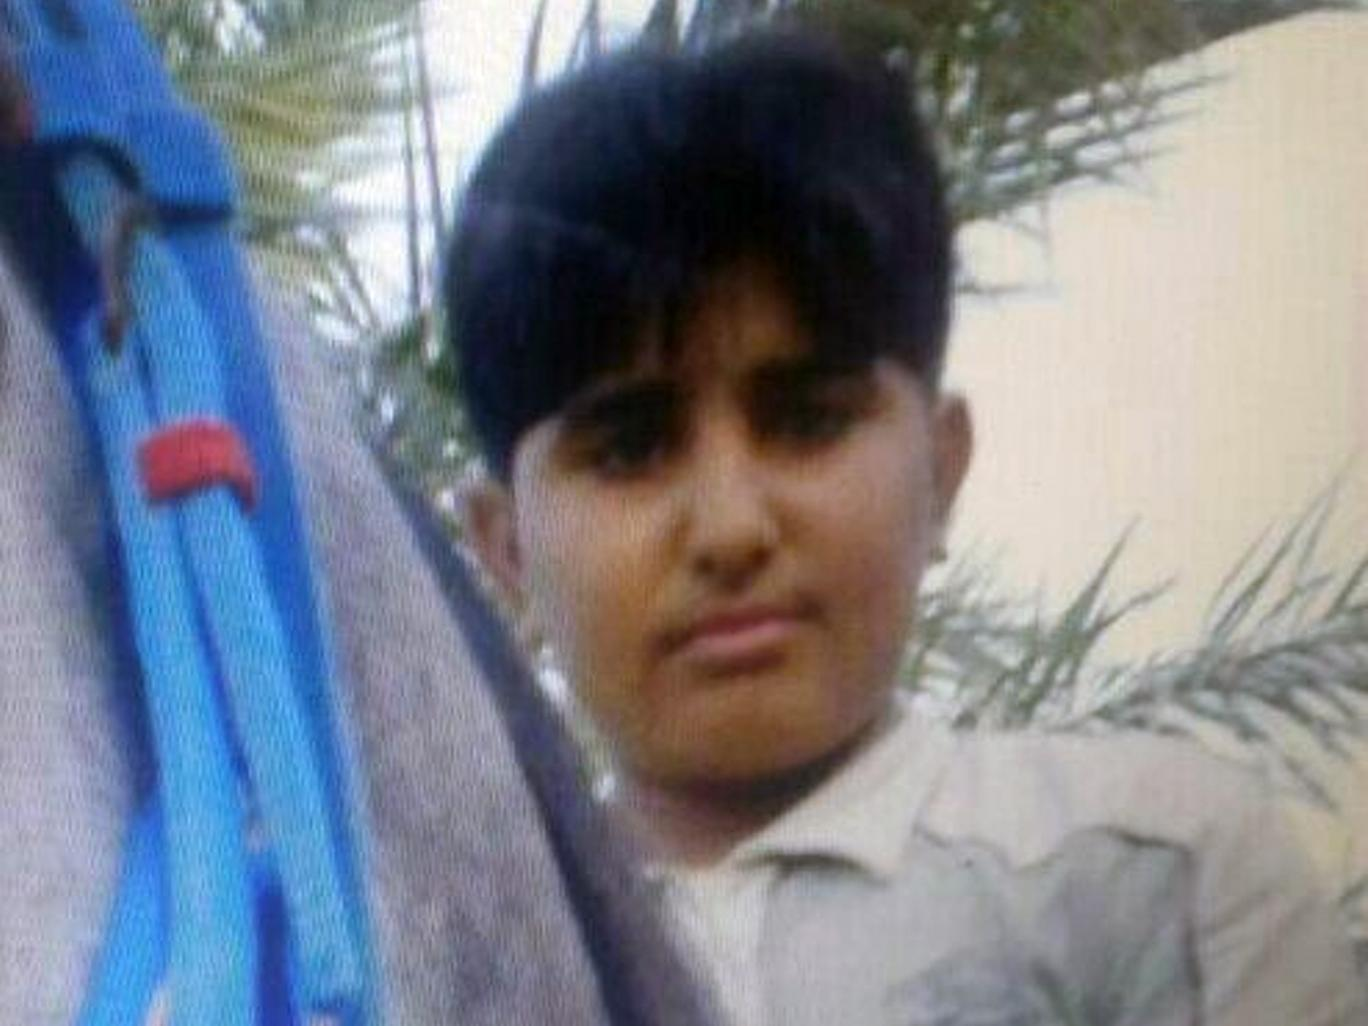 Abdullah al-Zaher: Saudi Arabia is about to behead a teenage boy for attending a protest aged 15